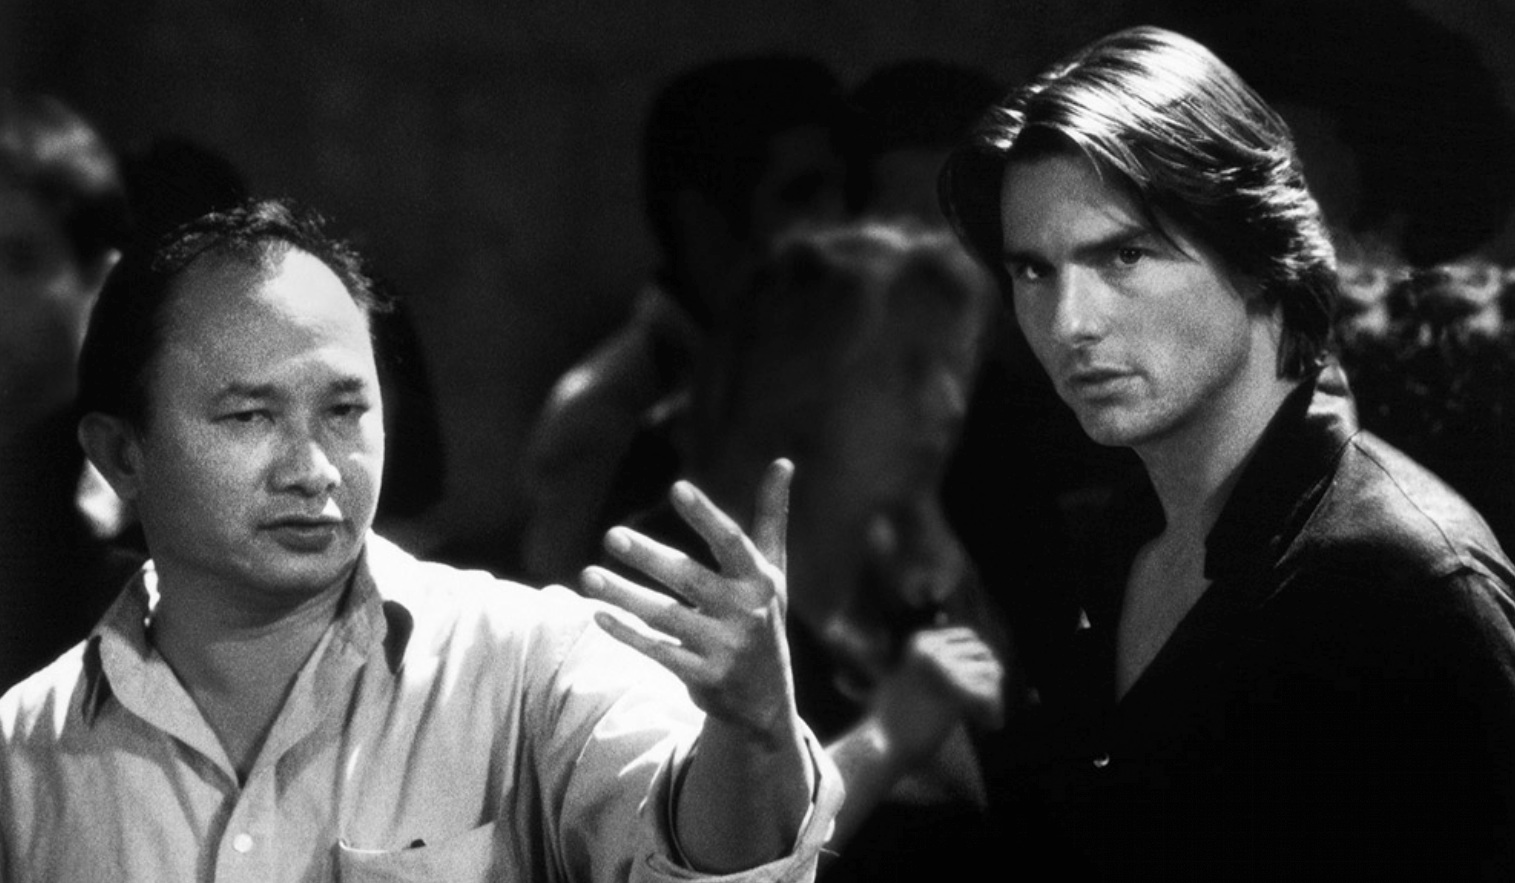 john woo Enough with the fucking birds already: a john woo film john woo, the  directorial guru of action, the master of violence his stylized action sequences  were hip.